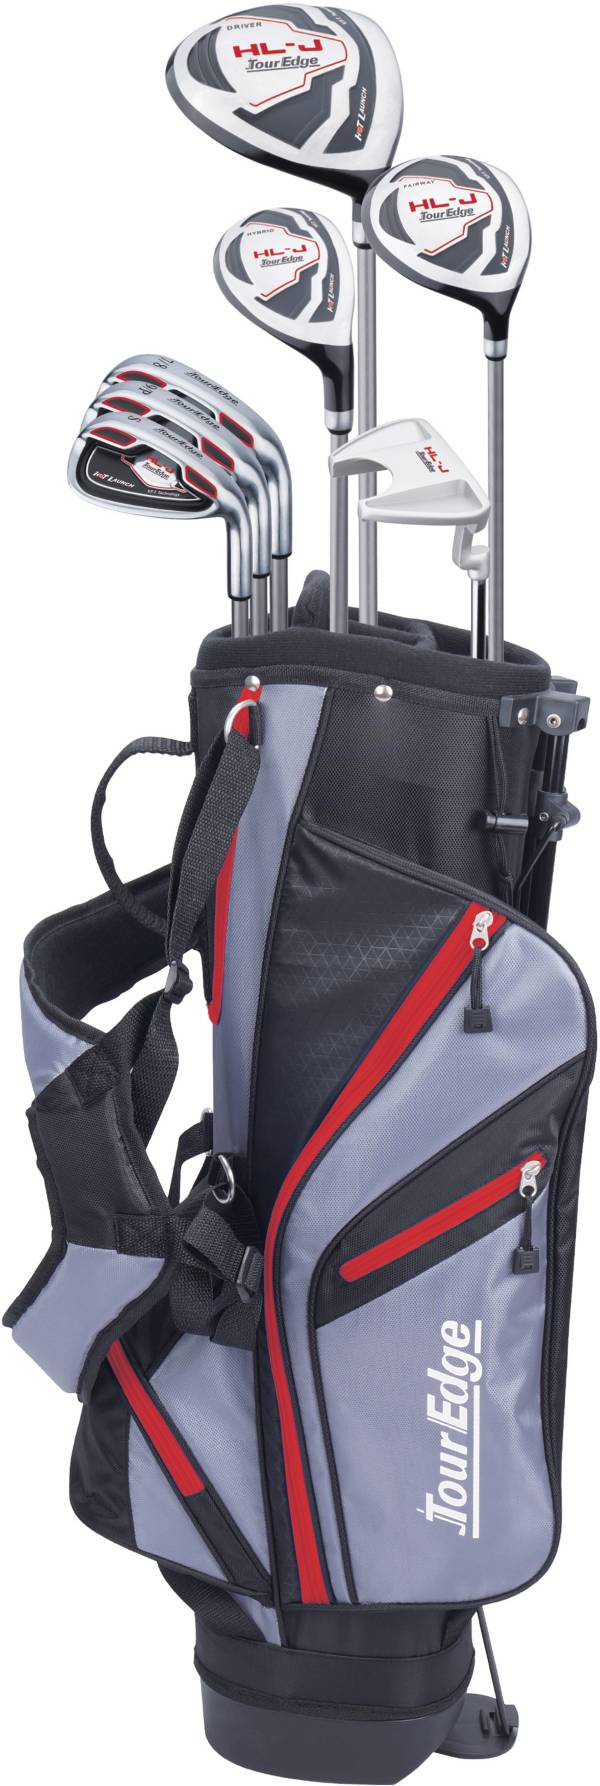 "Tour Edge Junior Hot Launch HL-J Complete Set – (Height 58"" – 64"") product image"